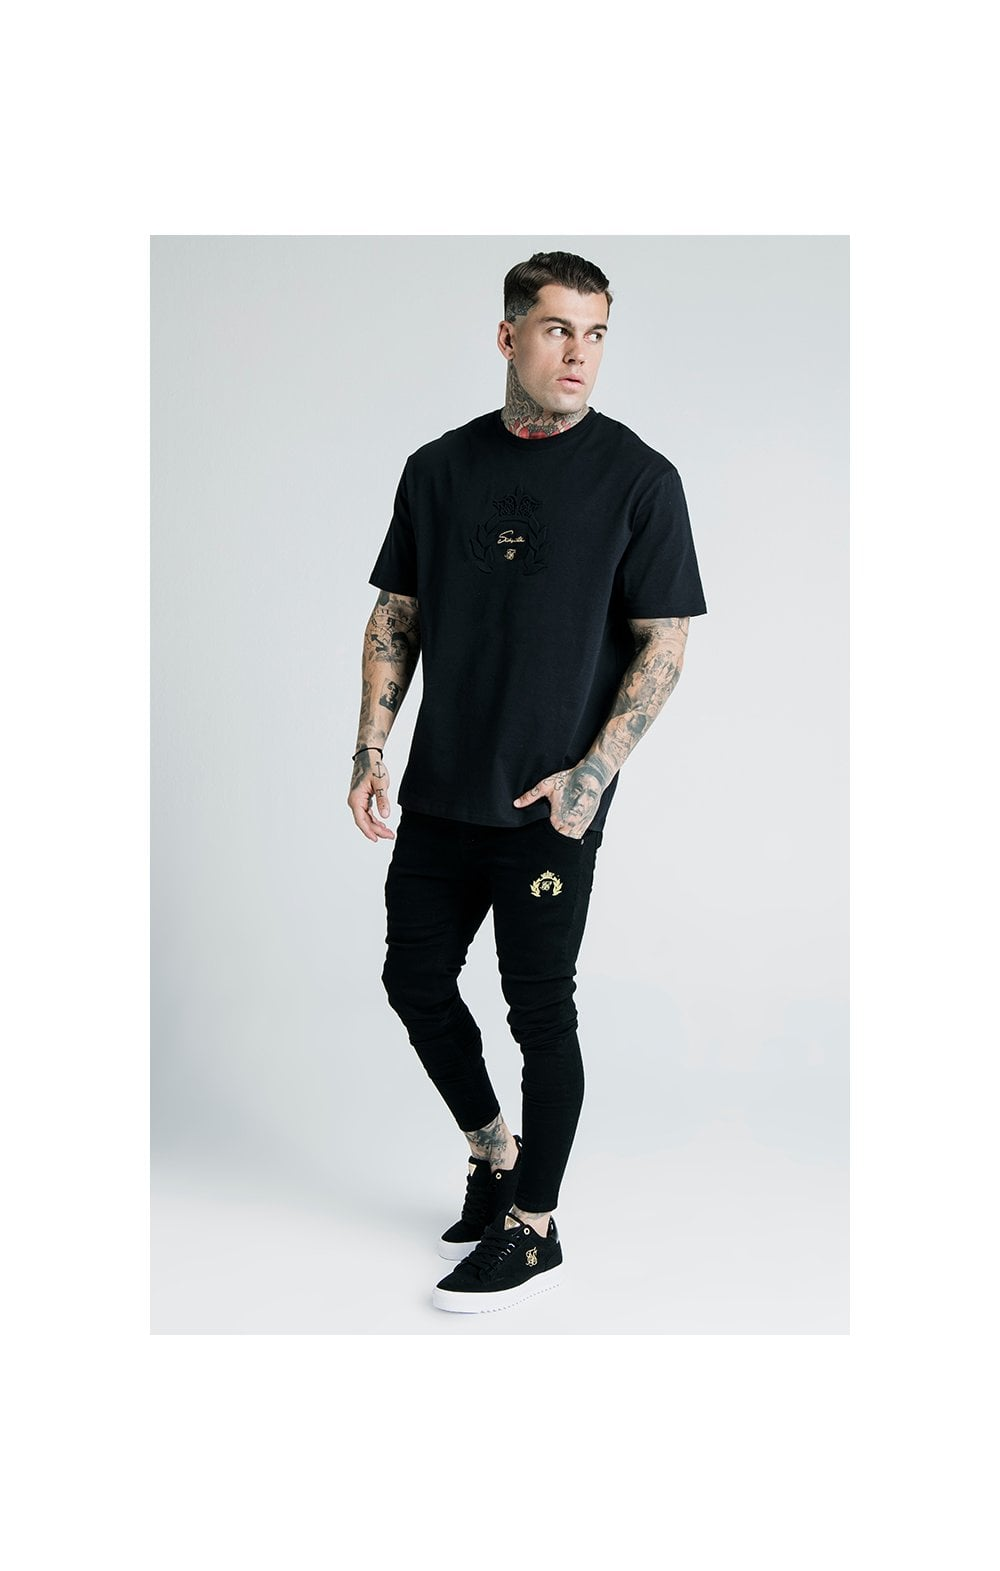 Laden Sie das Bild in den Galerie-Viewer, SikSilk X Dani Alves Luxus T-Shirt Kurzarm - Schwarz (4)